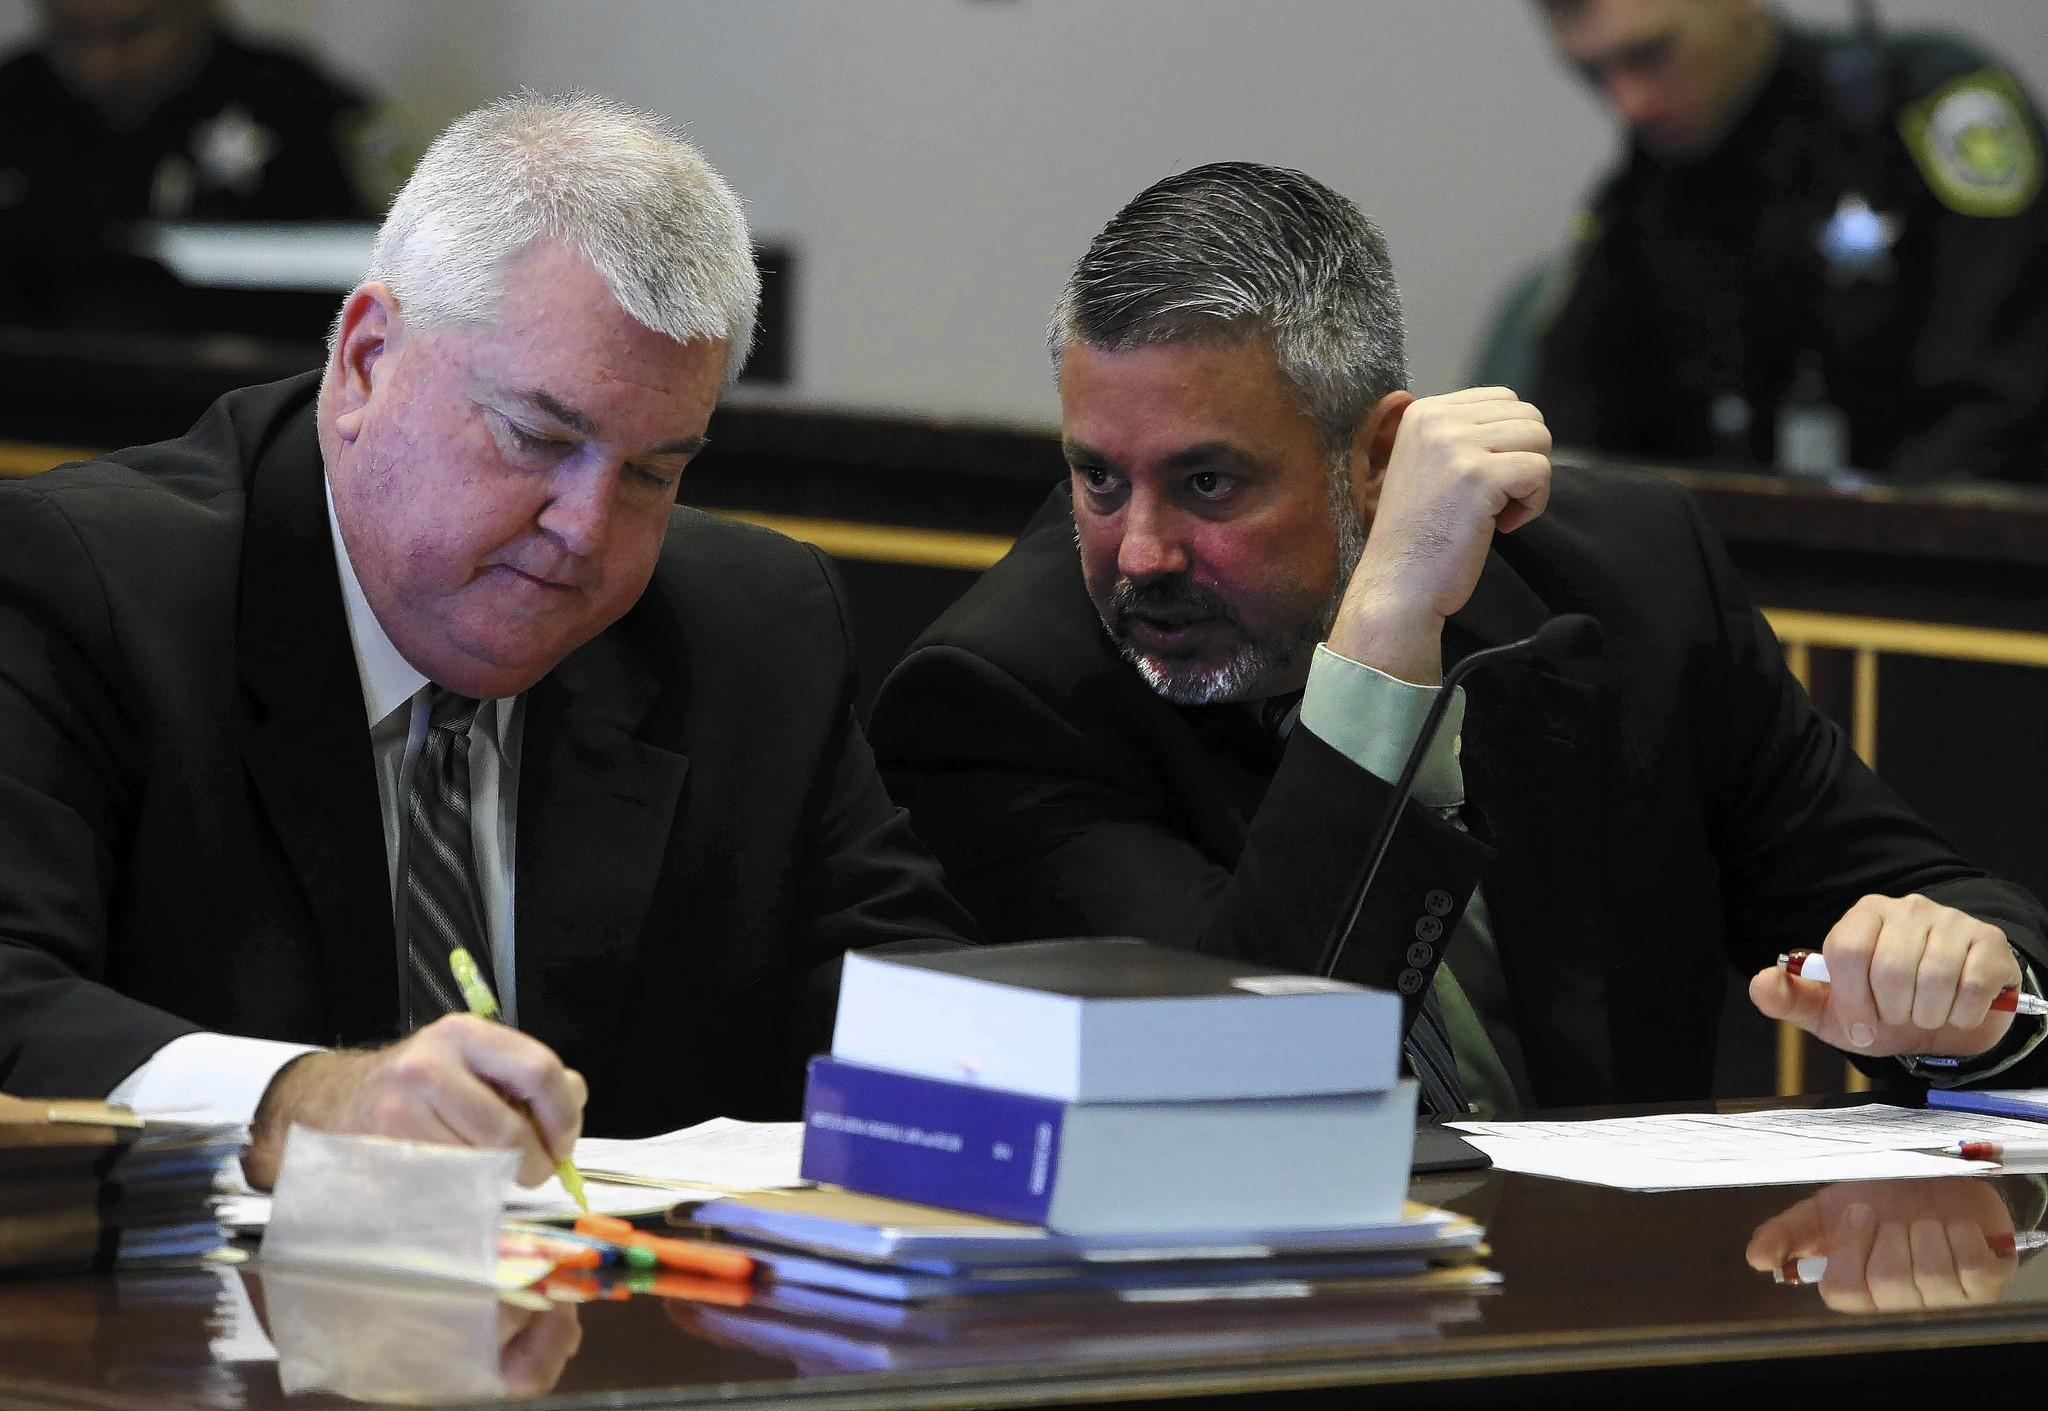 Former Windermere police chief Daniel Saylor talks with his defense attorney William McClellan. Jan. 21, 2014 B583477850Z.1 George Skene/Orlando Sentinel